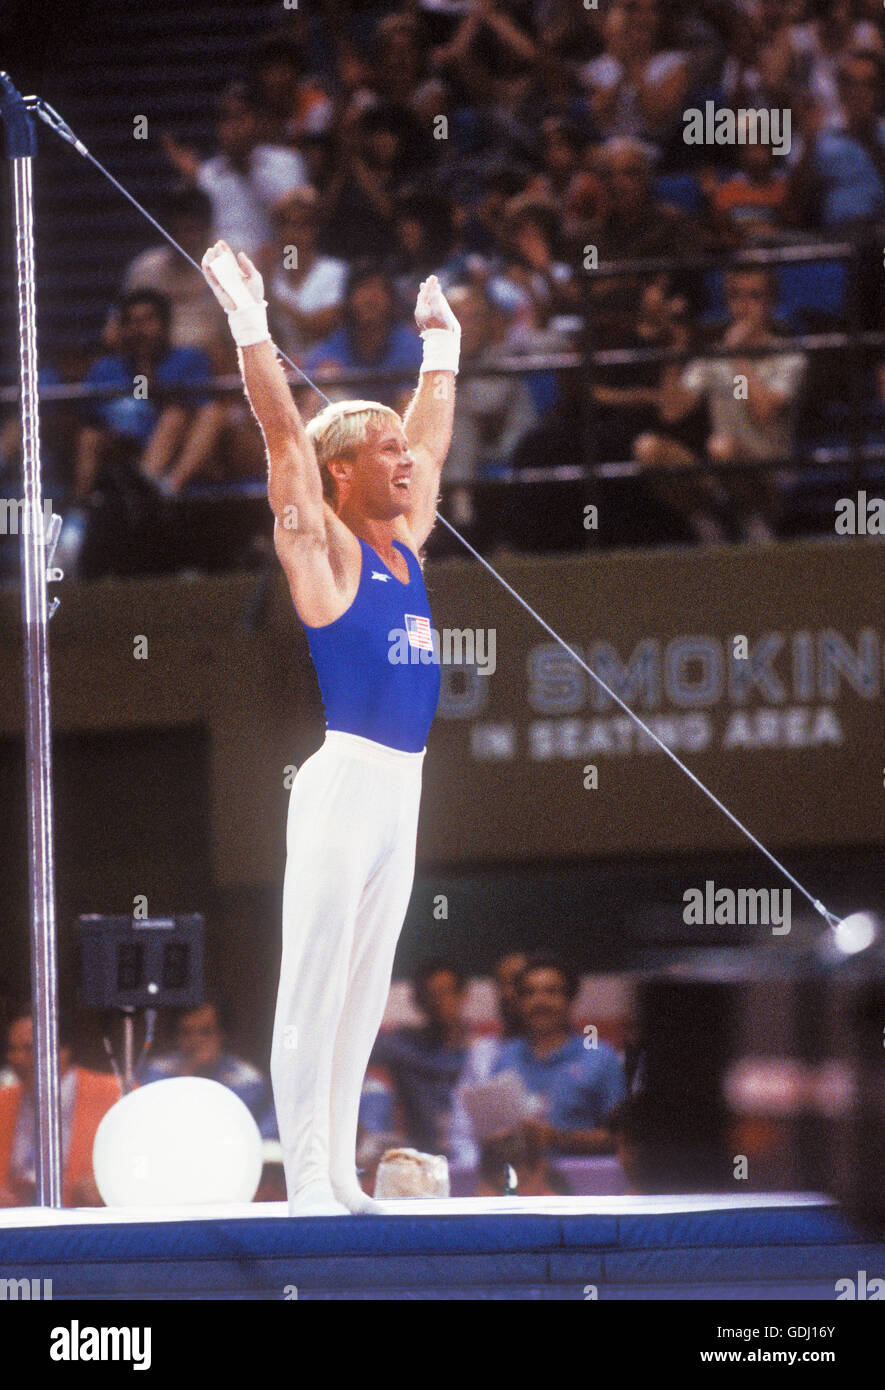 Bart Conner of USA receives applause from crowd during gymnastics competition at 1984 Olympic Games in Los Angeles. - Stock Image